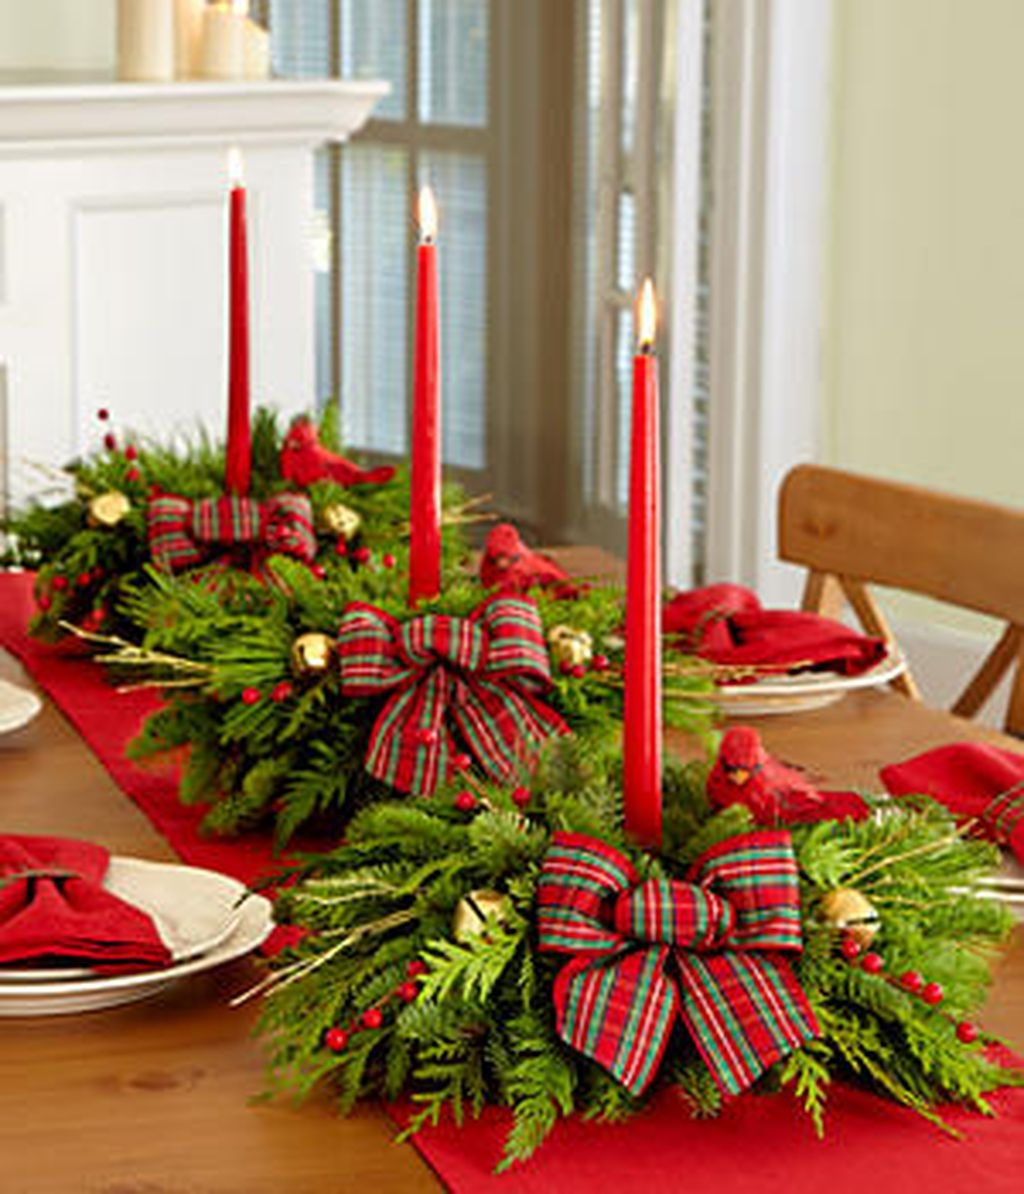 Romantic Christmas Centerpieces Ideas With Candles 29